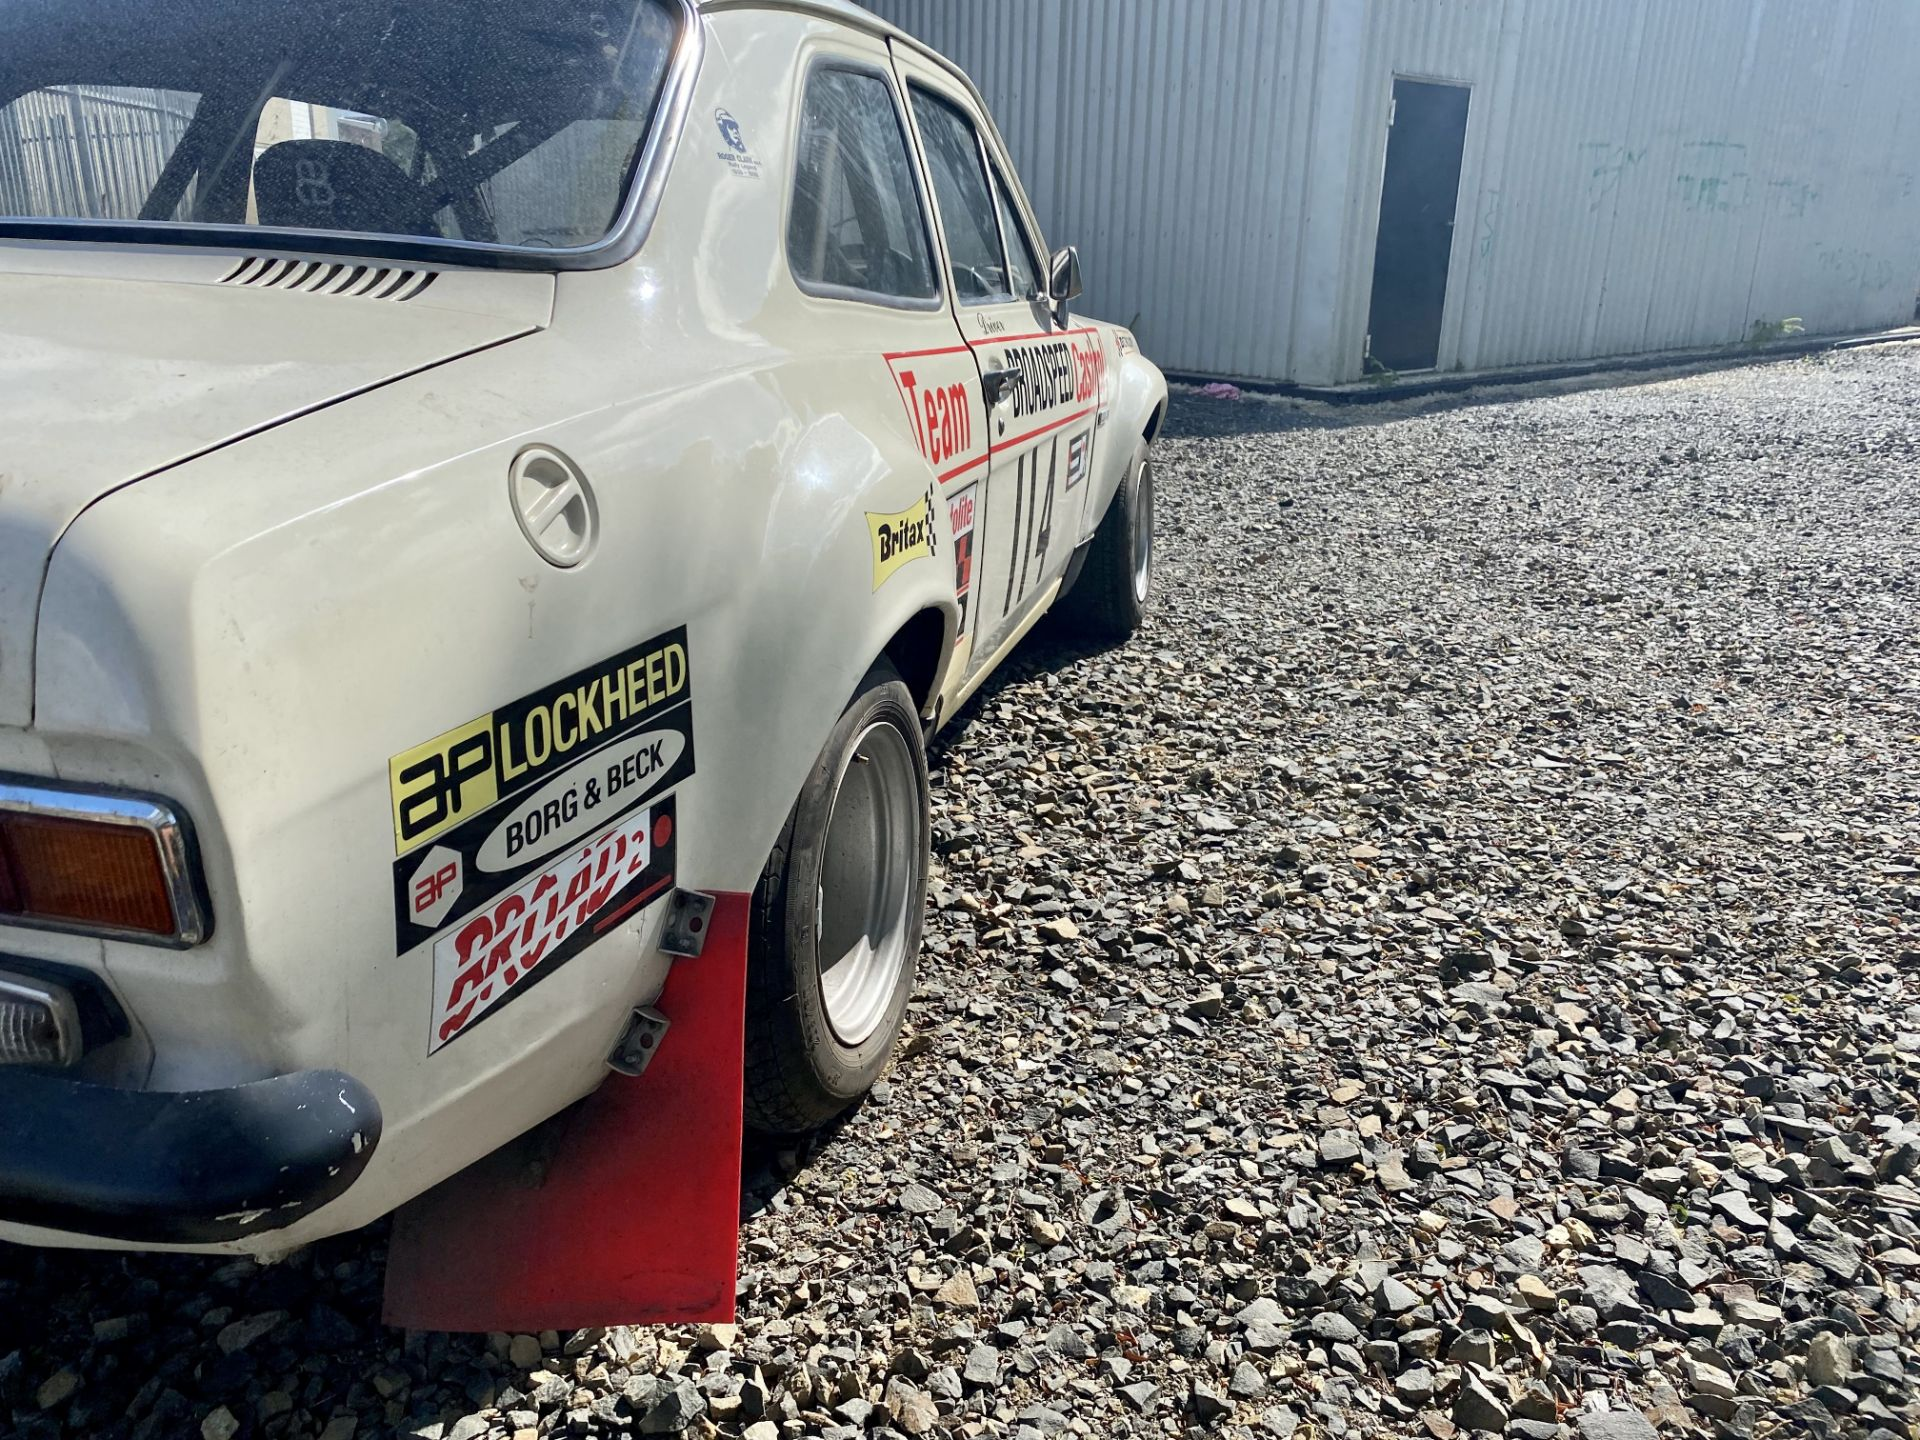 Ford Escort Mexico - Image 3 of 51